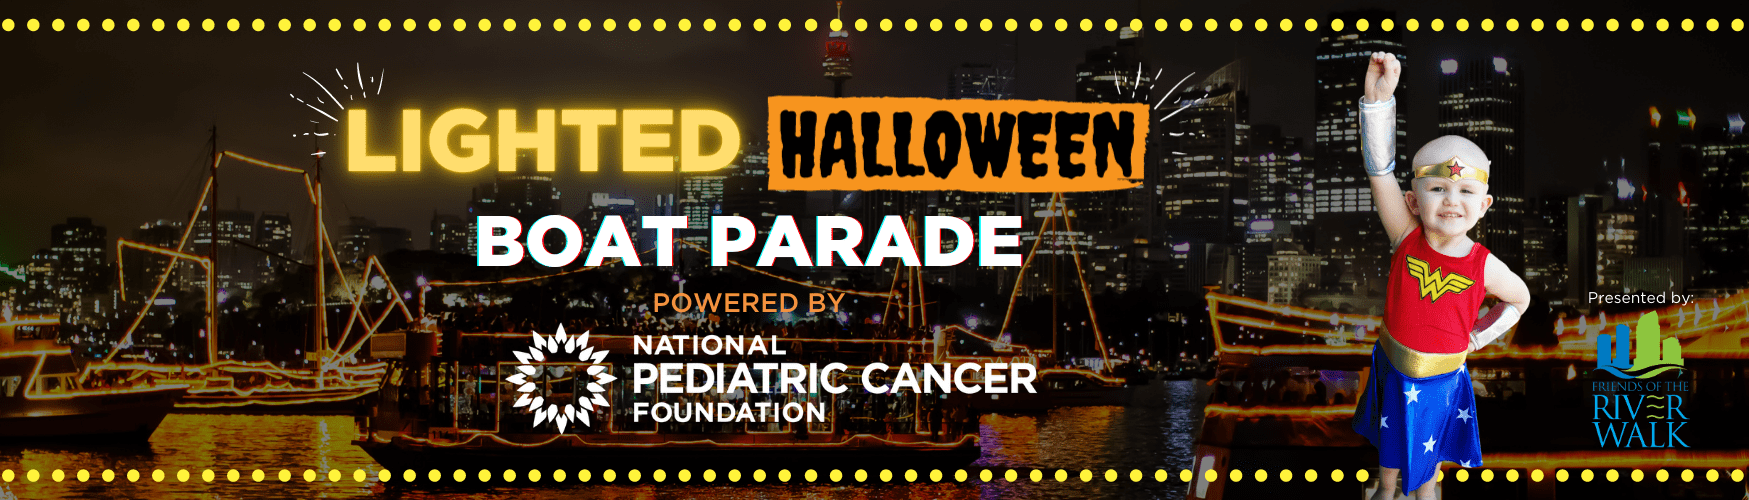 Halloween Lighted Boat Parade